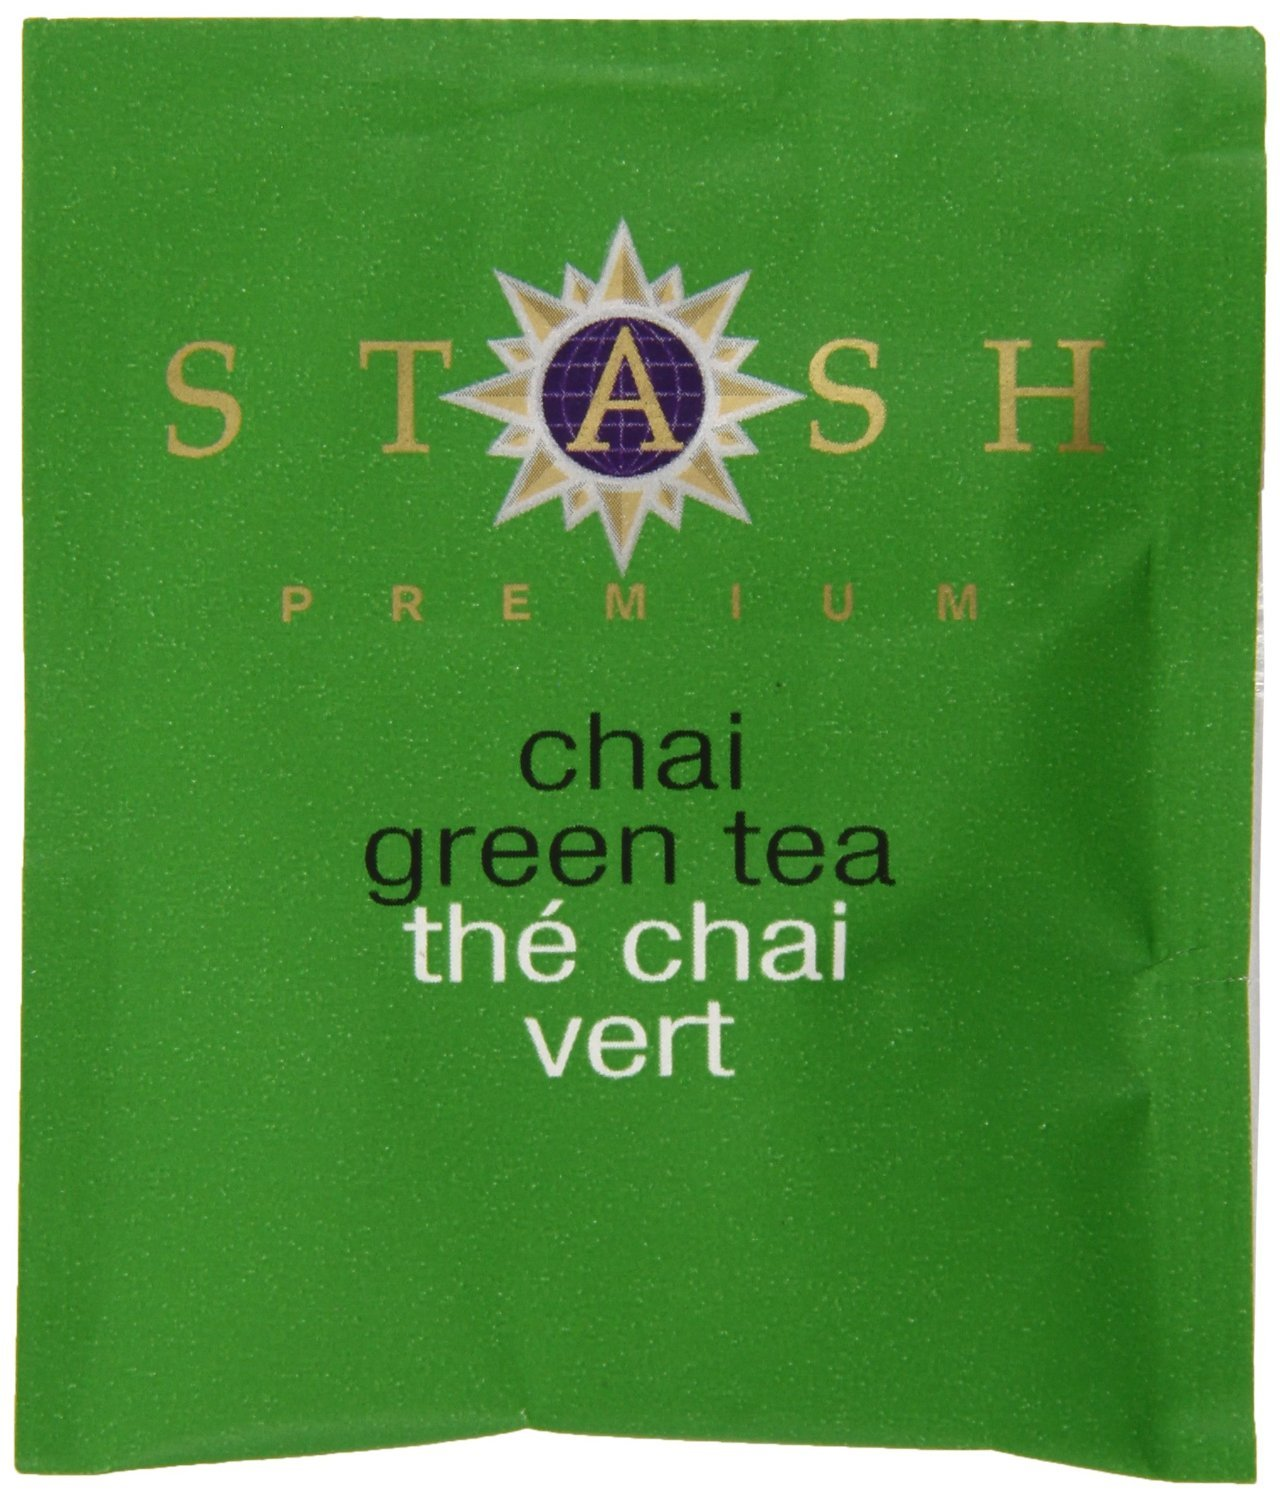 Stash Tea Green Chai Tea 10 Count Tea Bags in Foil (Pack of 12) (packaging may vary) Individual Spiced Green Tea Bags for Use in Teapots Mugs or Teacups, Brew Hot Tea or Iced Tea by Stash Tea (Image #4)